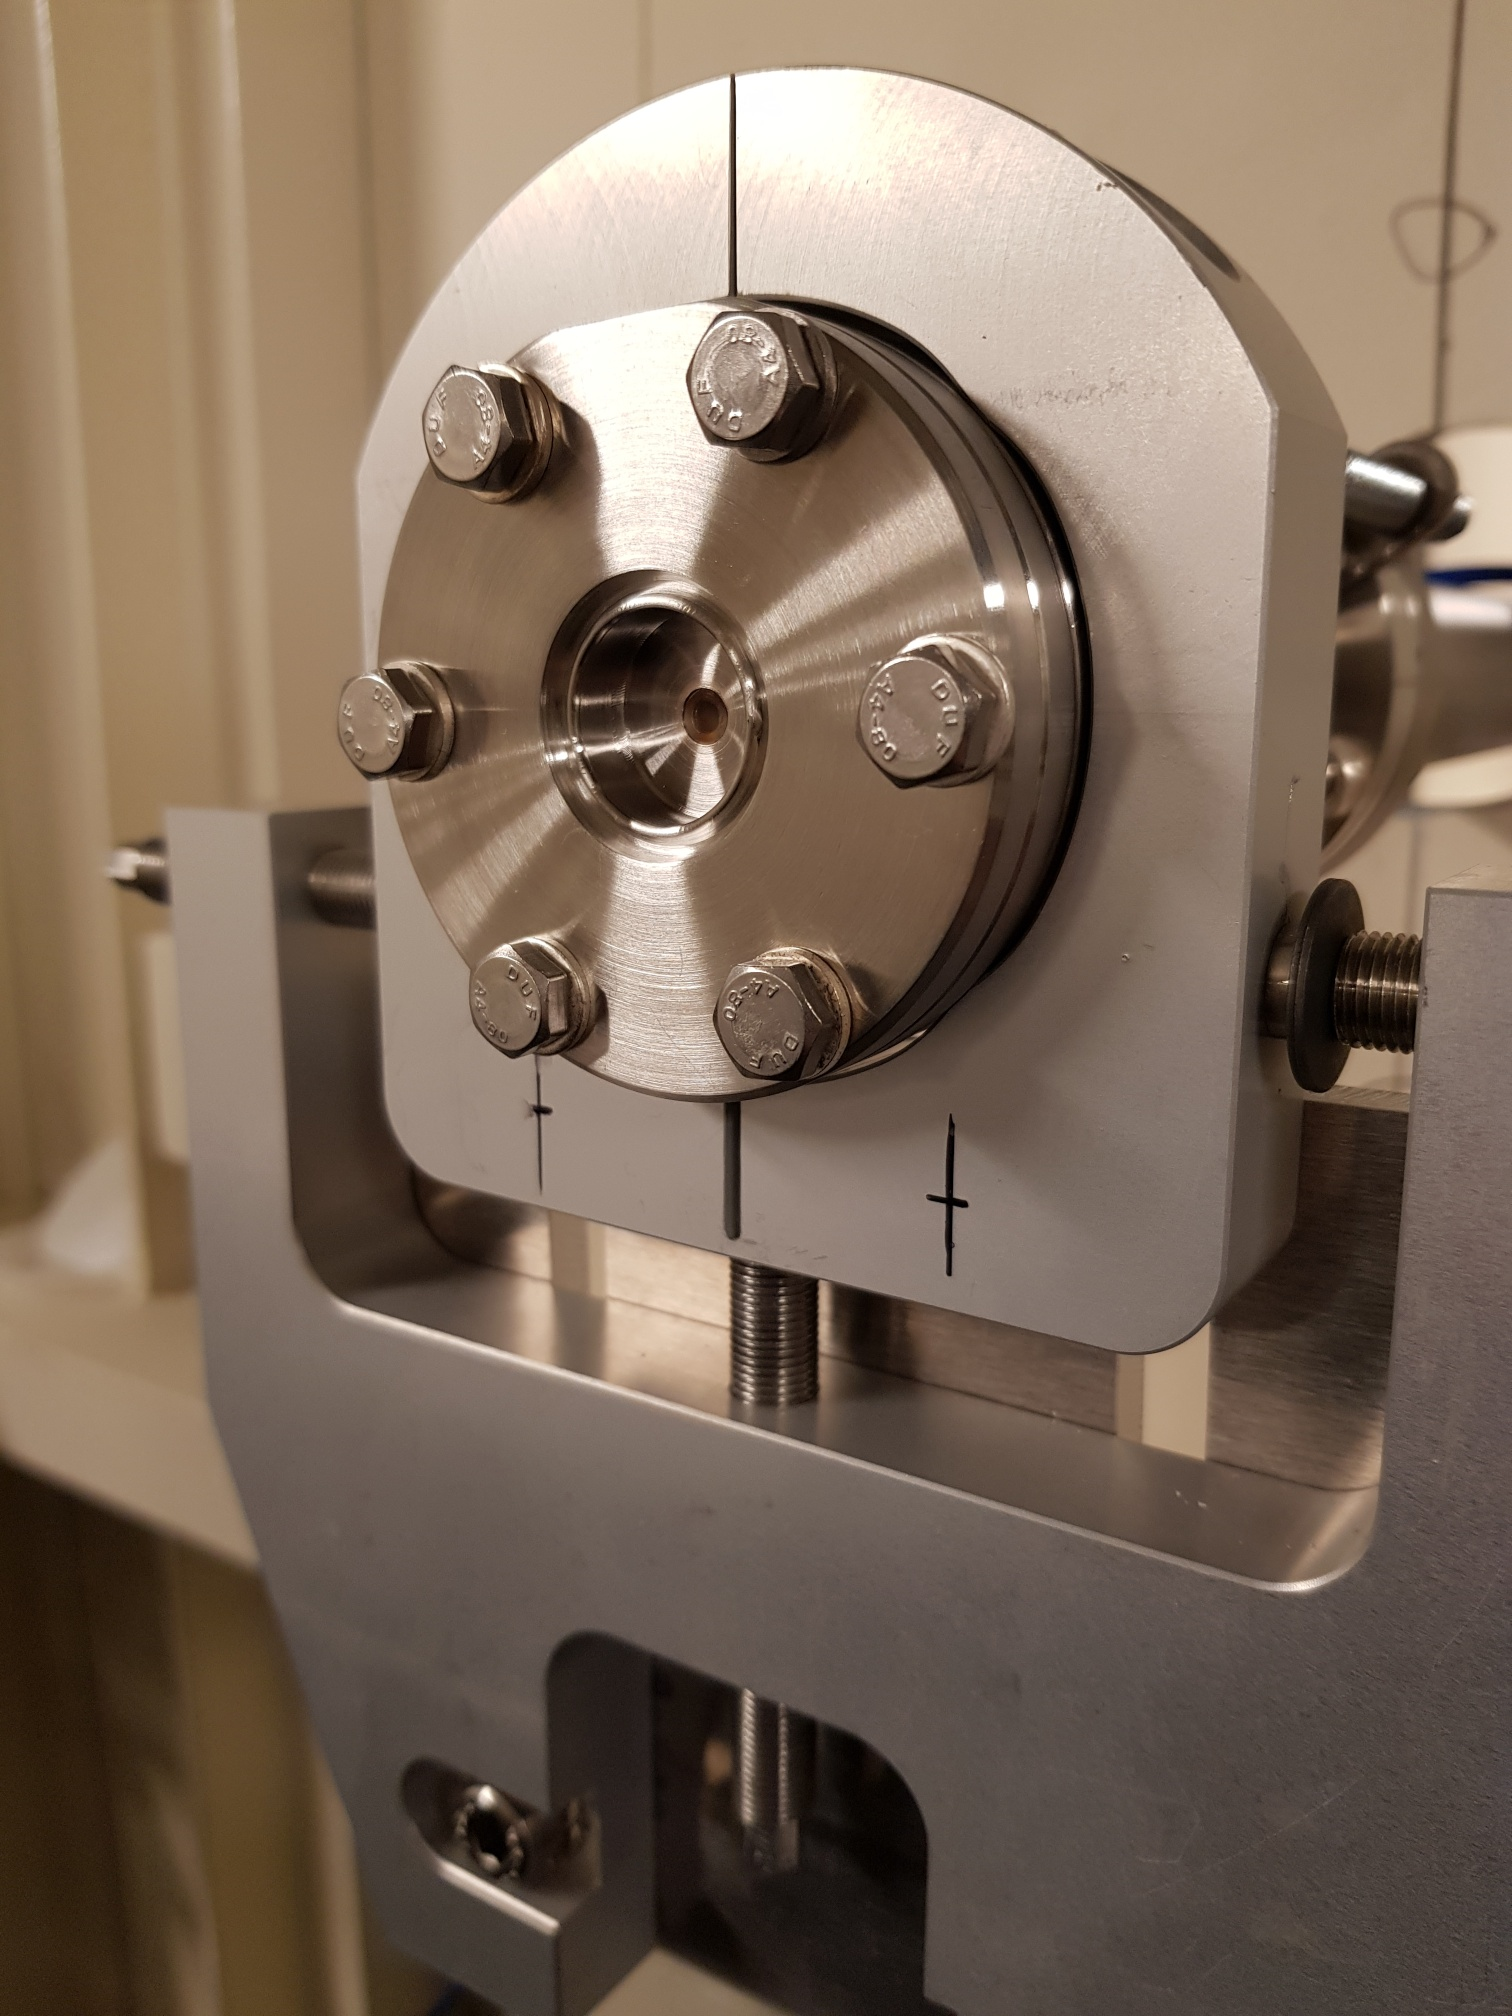 Optical Diamond Viewport installed on the DanMAX materials science beamline at the MAX IV Synchrotron facility in Sweden